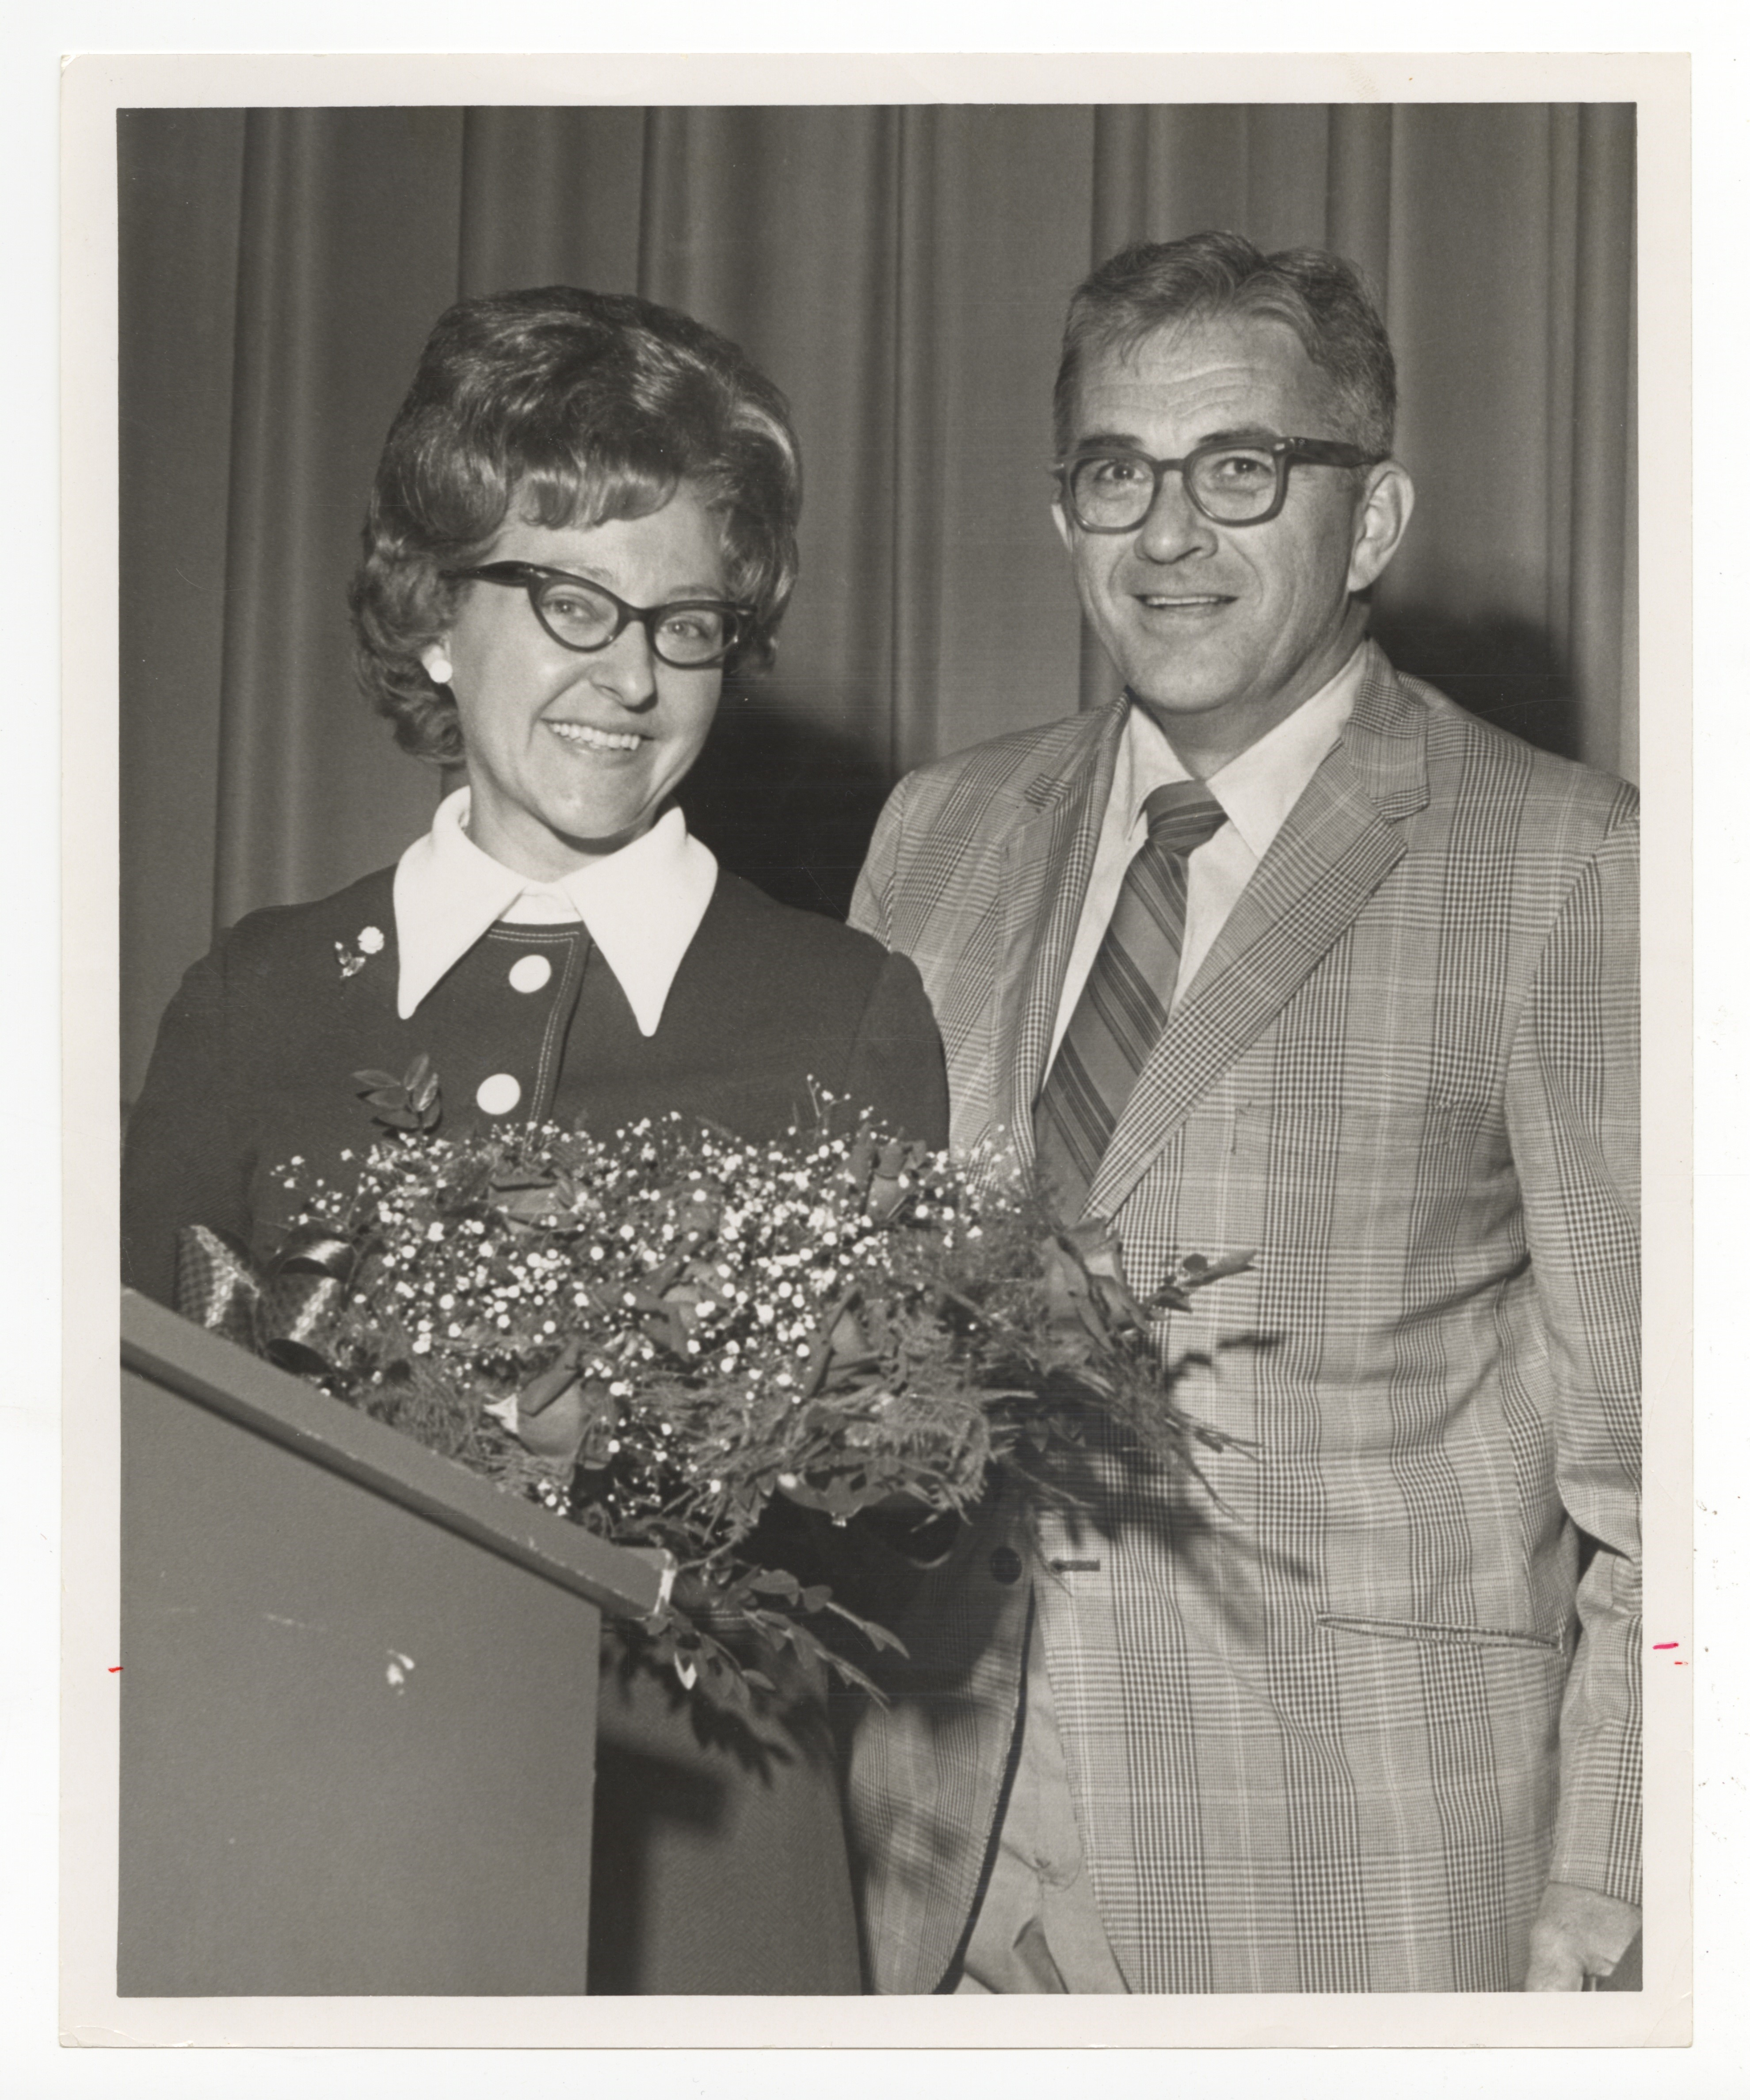 Pat Clapp, standing before a podium with a bouquet of flowers in April 1971. Pat's husband, Harry Clapp, is standing beside her. Patricia Clapp Papers and Photographs, MSS 1196, Detre Library and Archives, Heinz History Center.